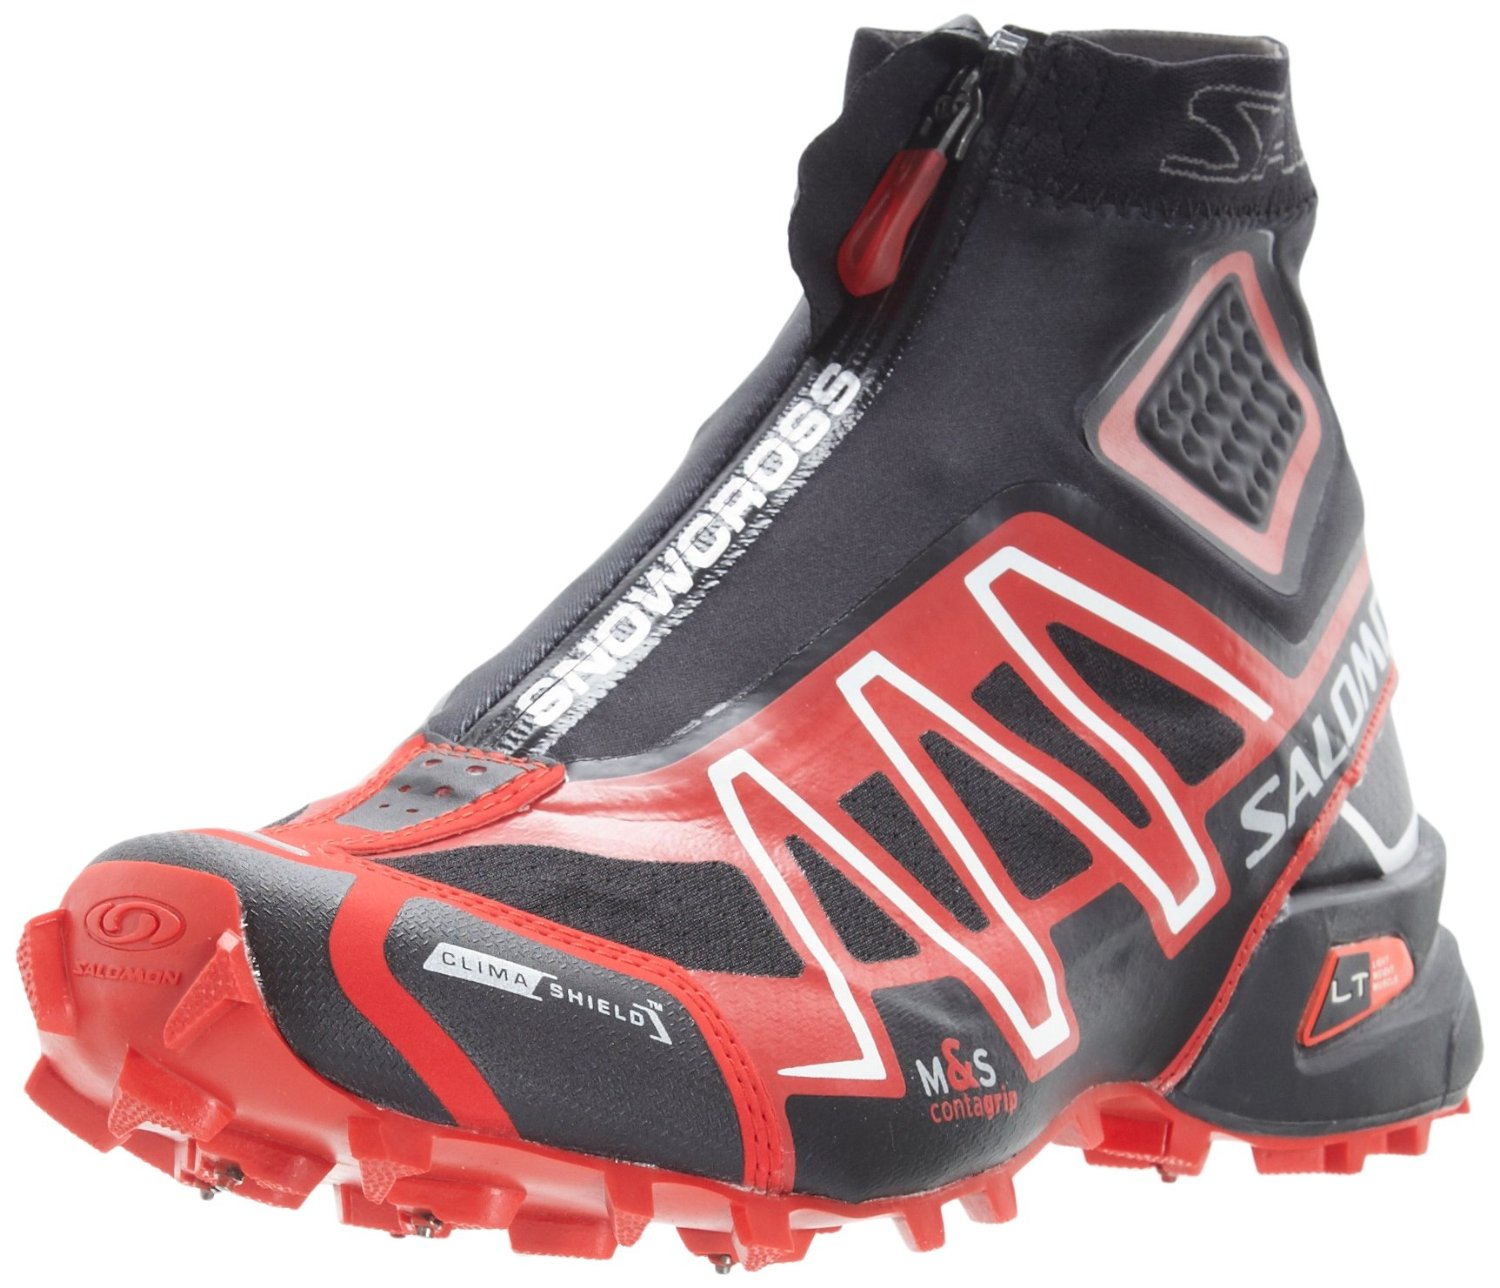 Review: Salomon Snowcross CS Winter Trail Running Shoes